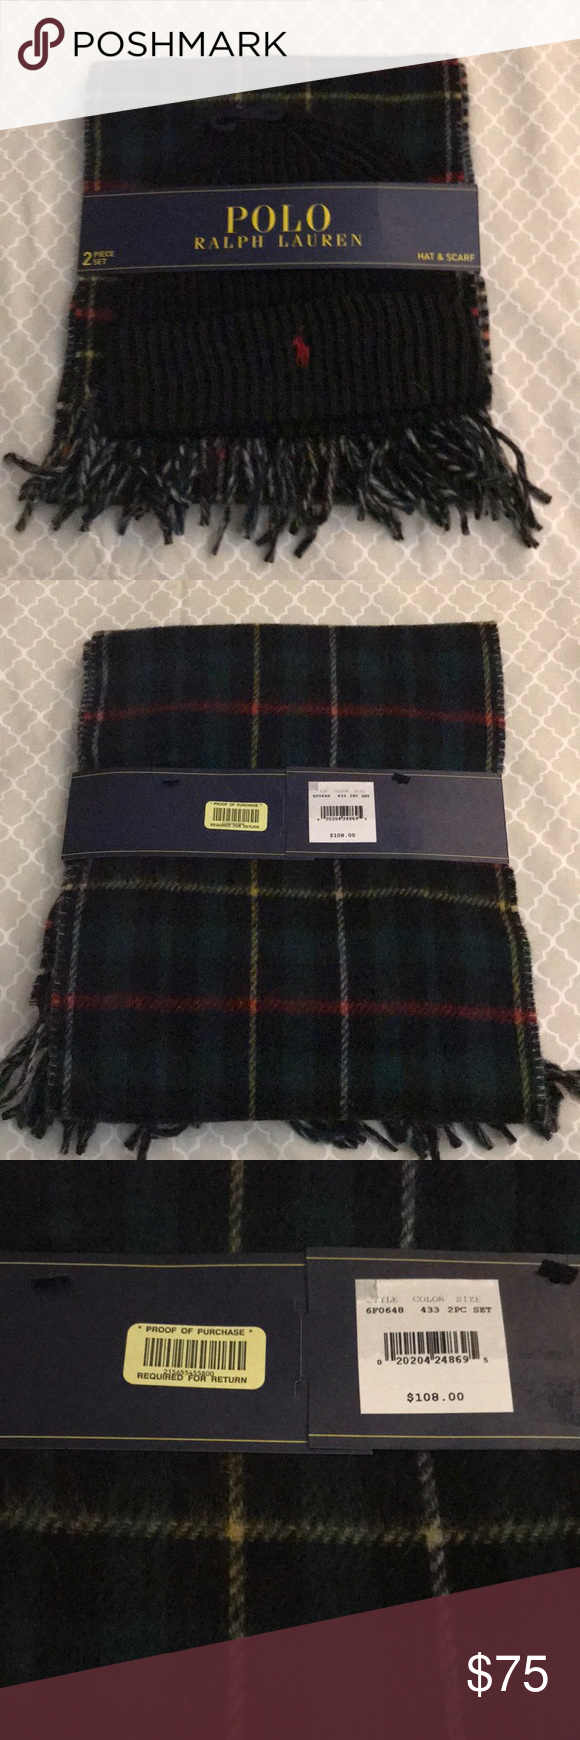 a602520fb1890 Polo Ralph Lauren Reversible Wool Scarf  amp  Hat NEW WITH TAGS!! Polo Ralph